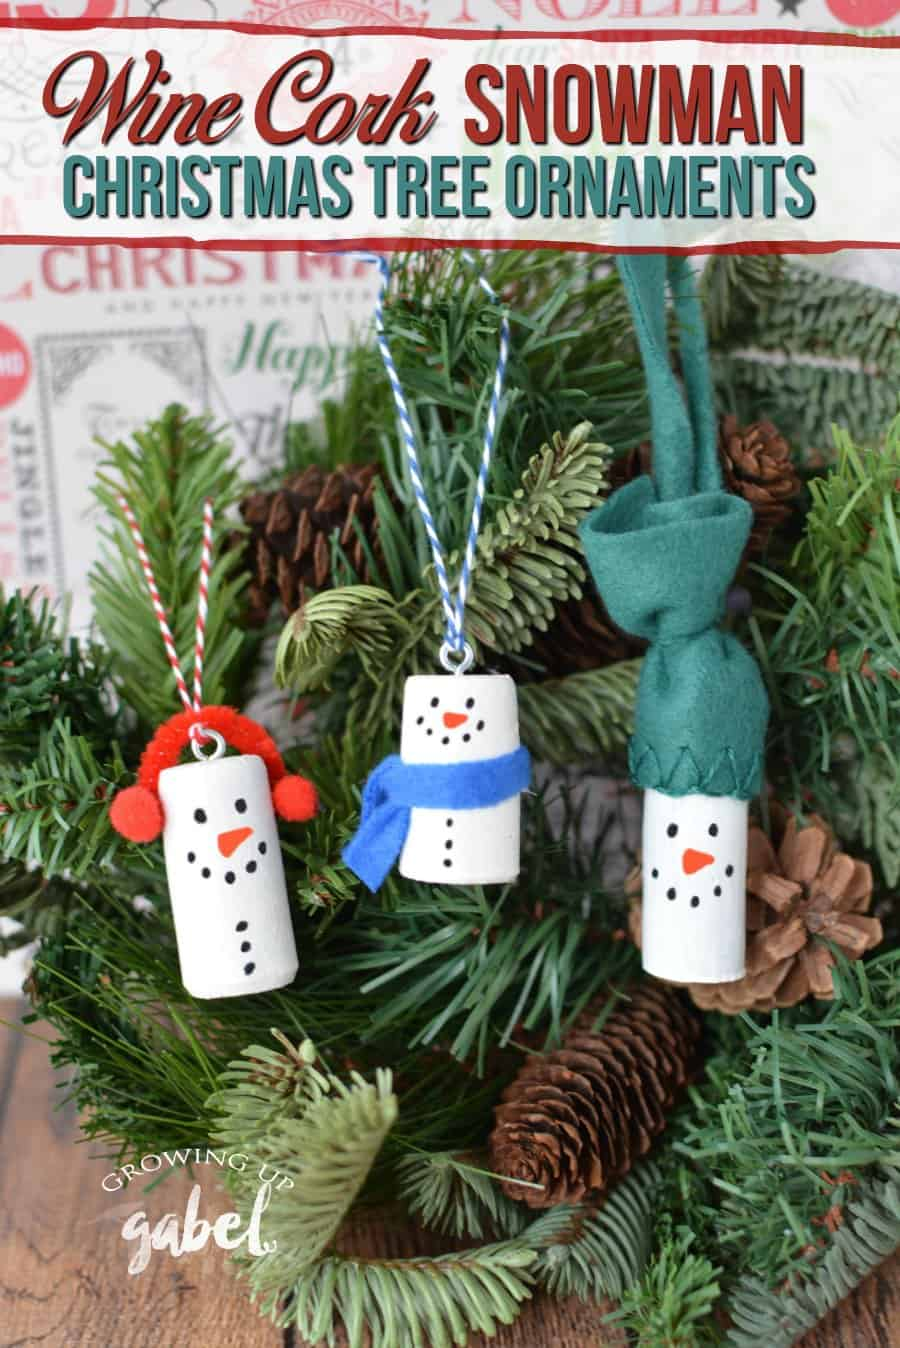 make diy wine cork snowman christmas tree ornaments using old wine corks three variations on